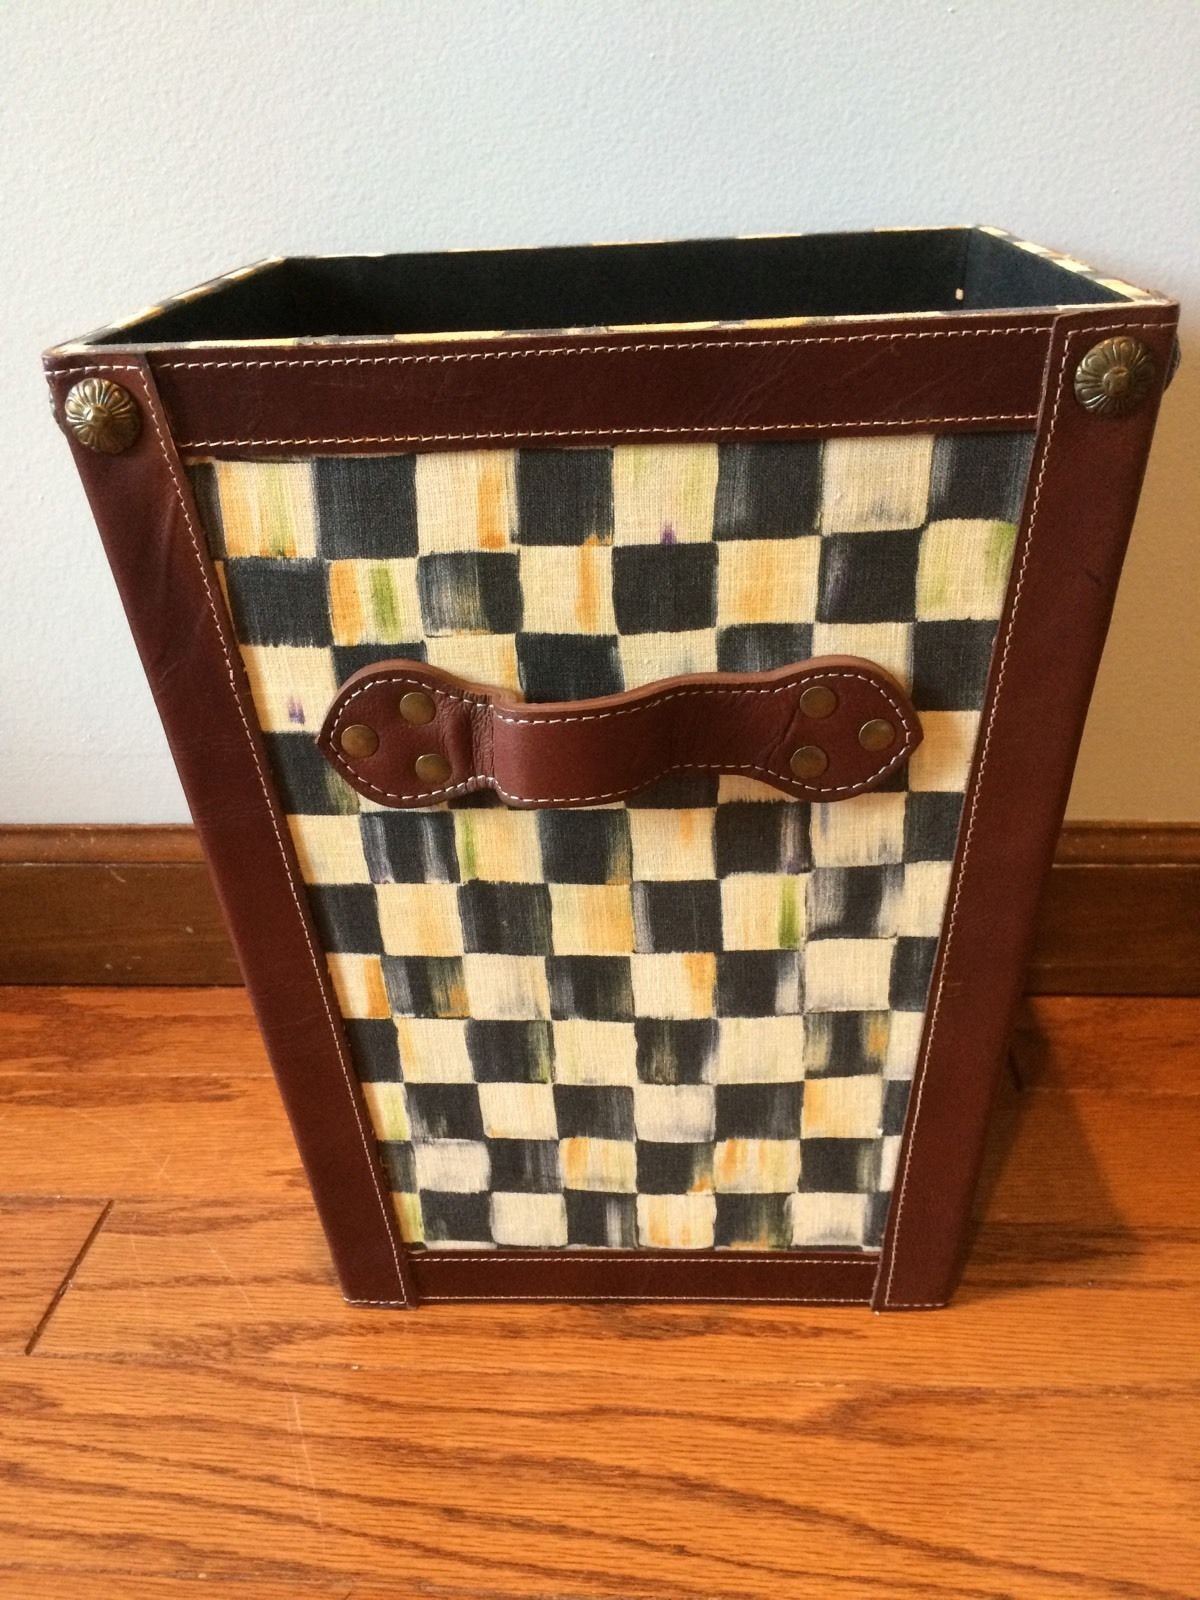 Mackenzie Childs Courtly Check Waste Basket 100% Authentic.